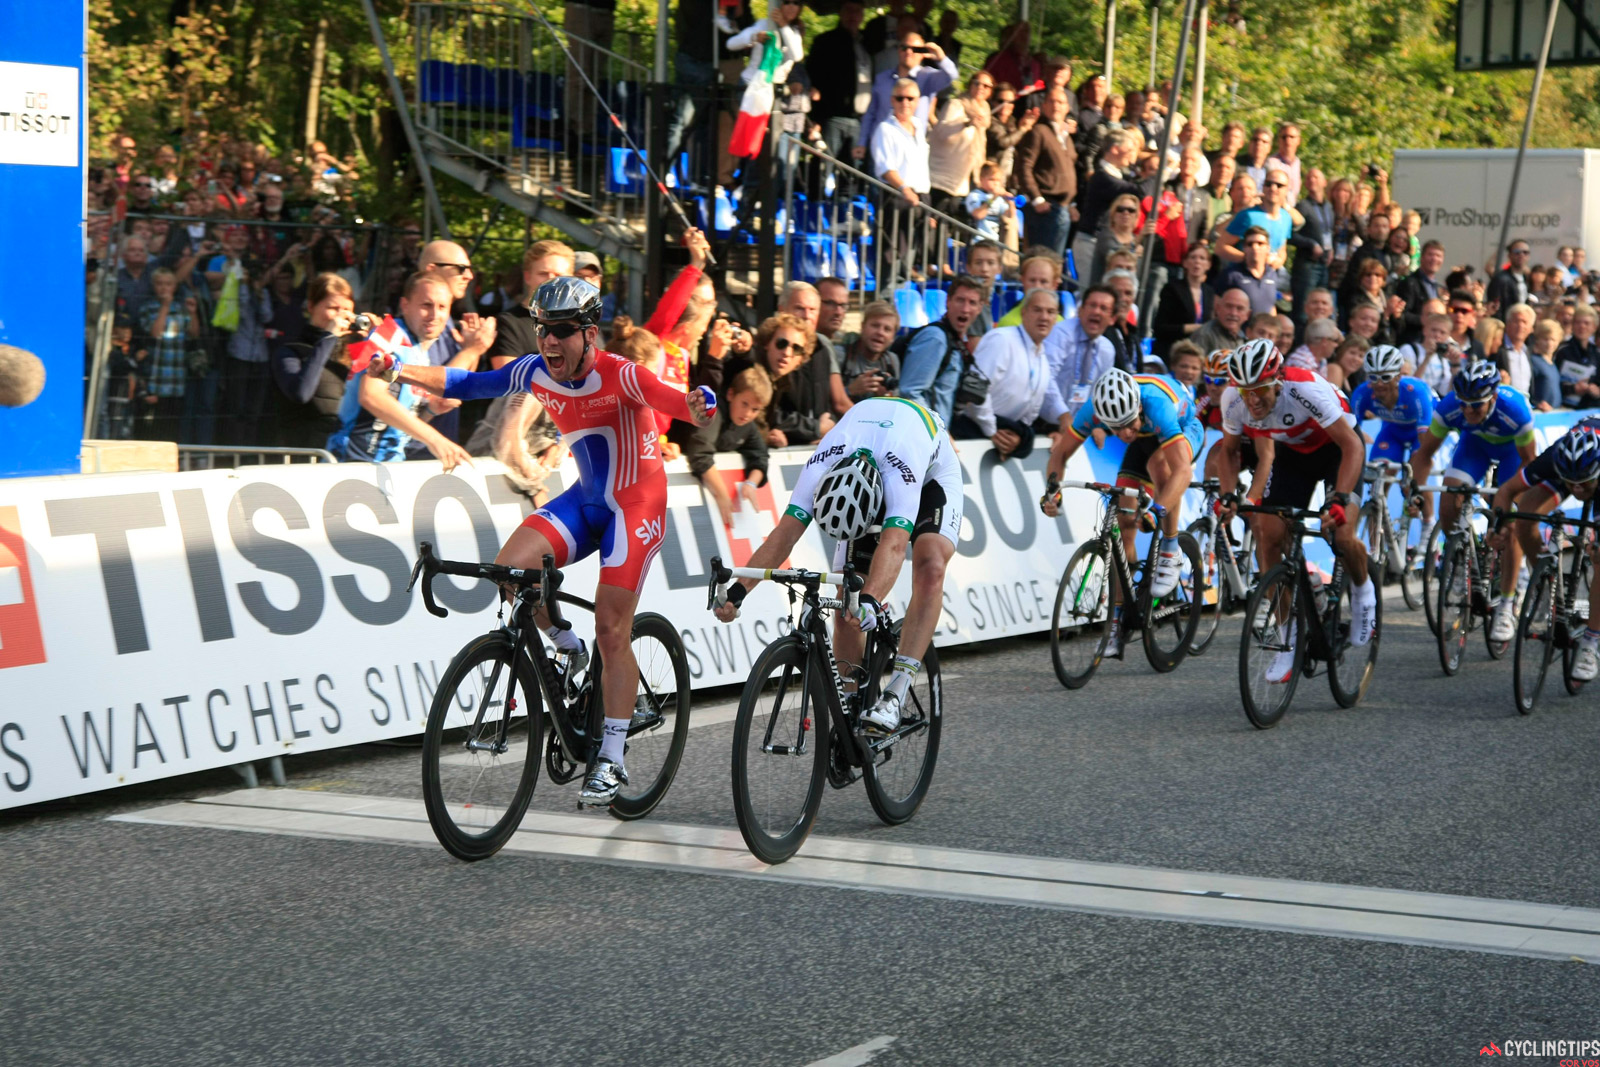 This is how close the 2011 world road race championships was: Matt Goss narrowly loses to Mark Cavendish.